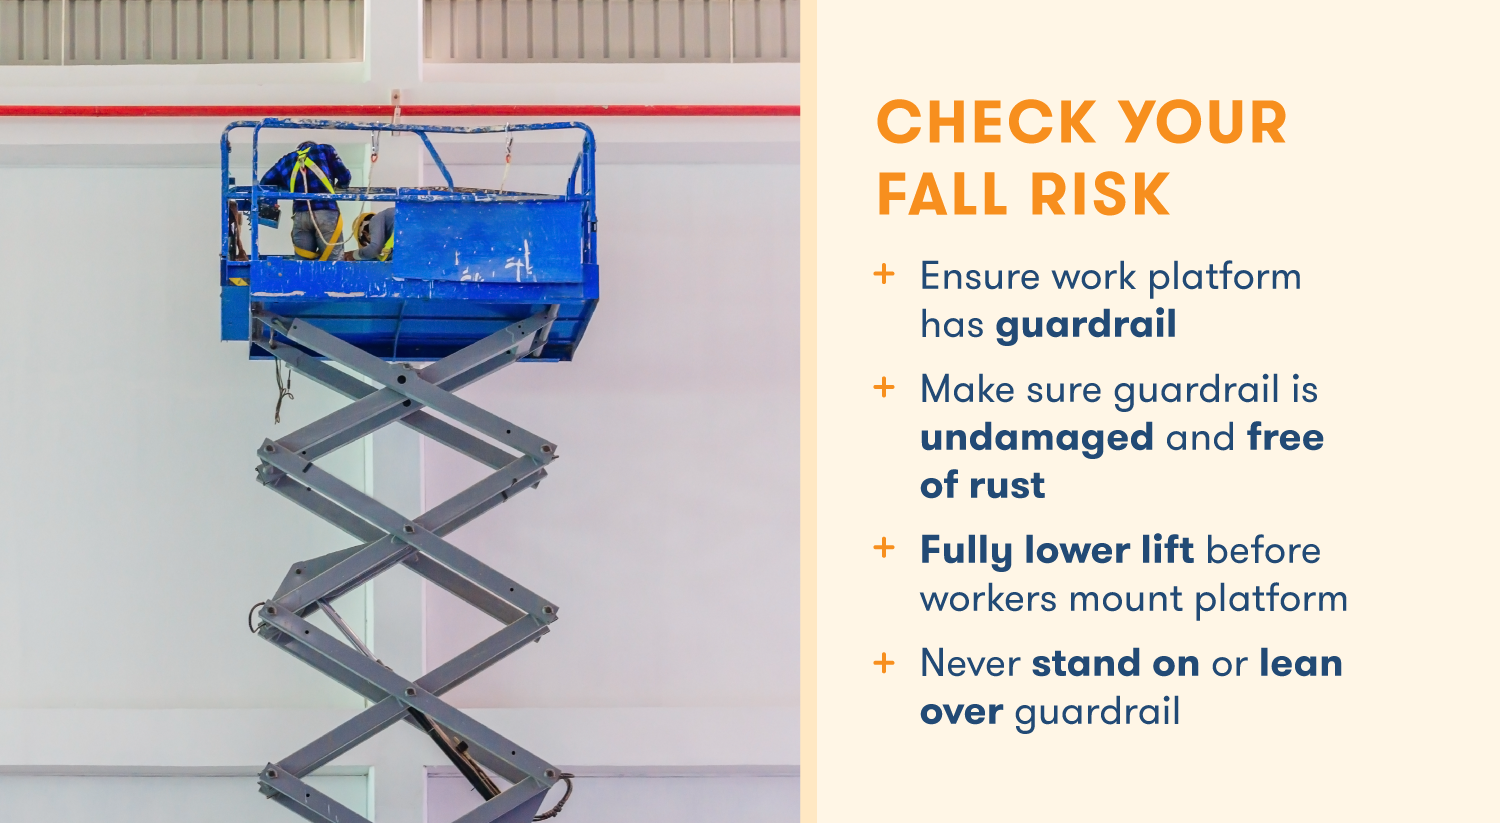 Checklist for avoiding falling off a scissor lift